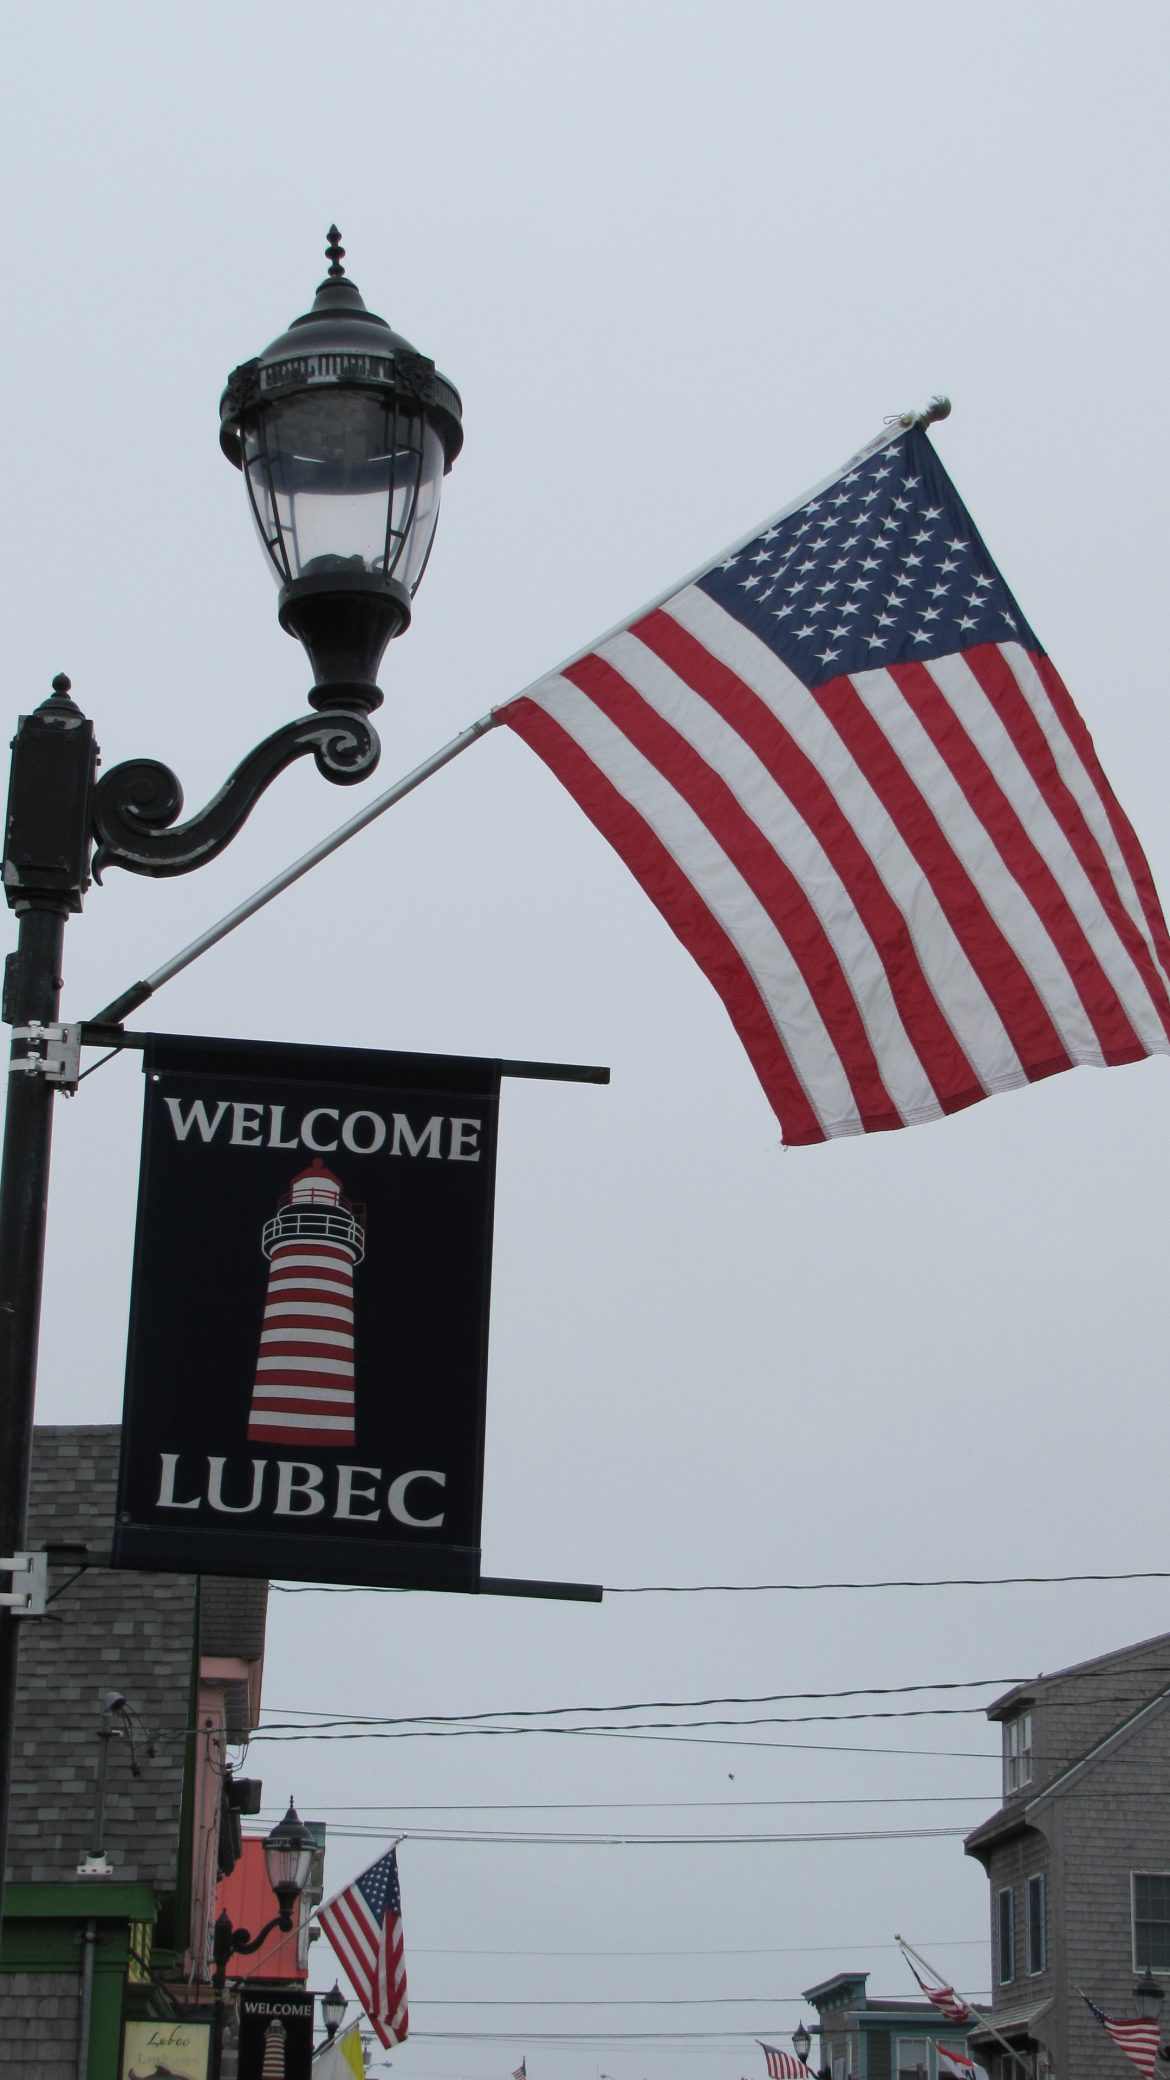 Lubec is Lovely at Any Time of Year